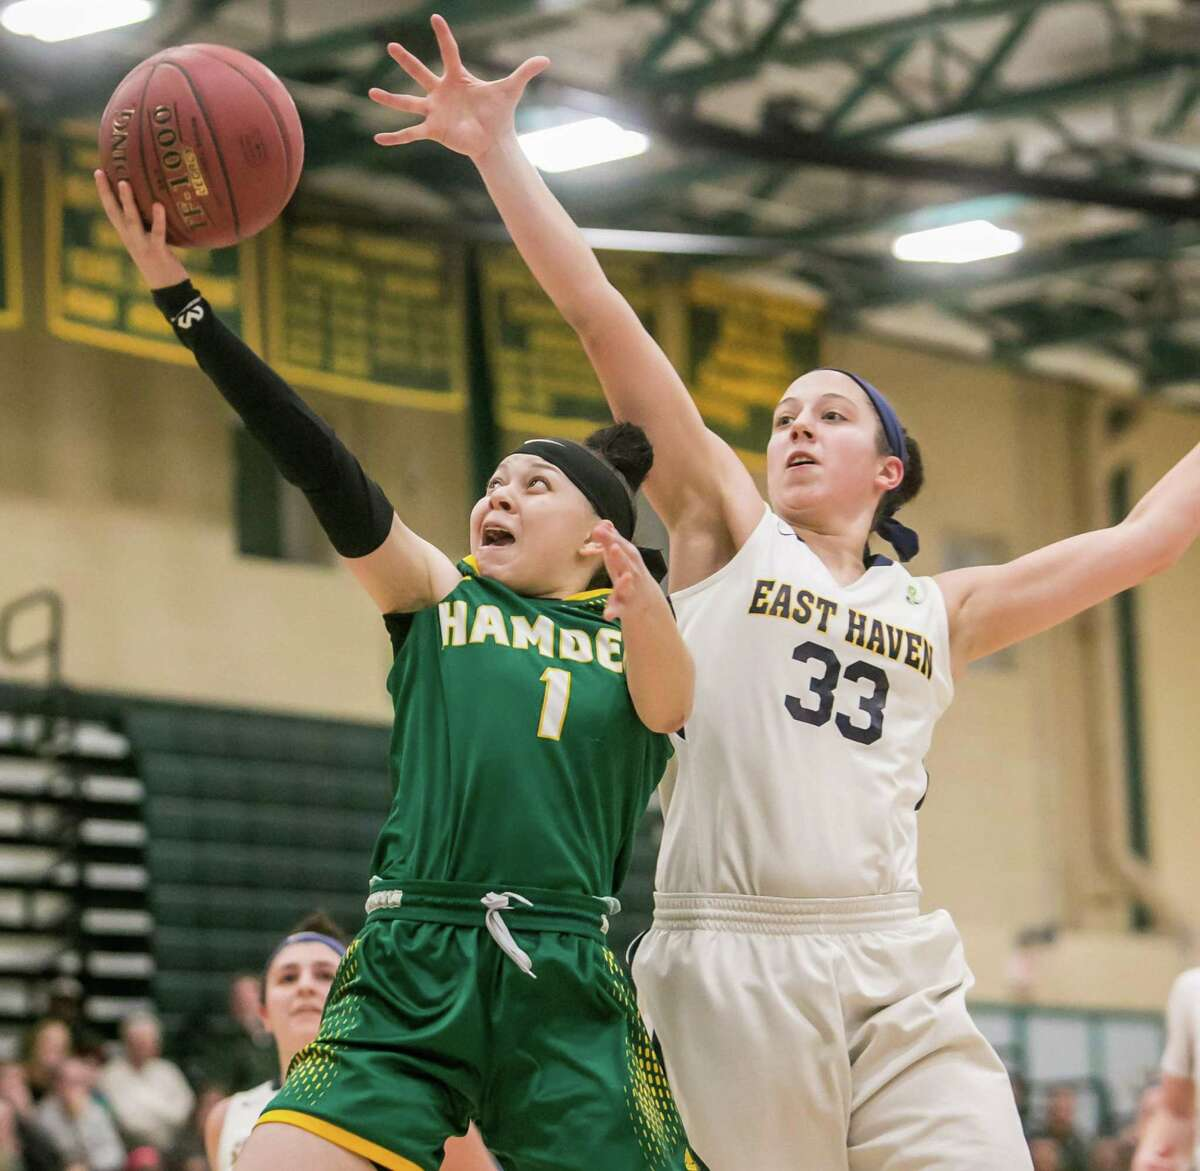 Hamden's Asya Brandon goes in for a layup past East Haven defender Taylor Salato during the SCC championship game on Thursday.